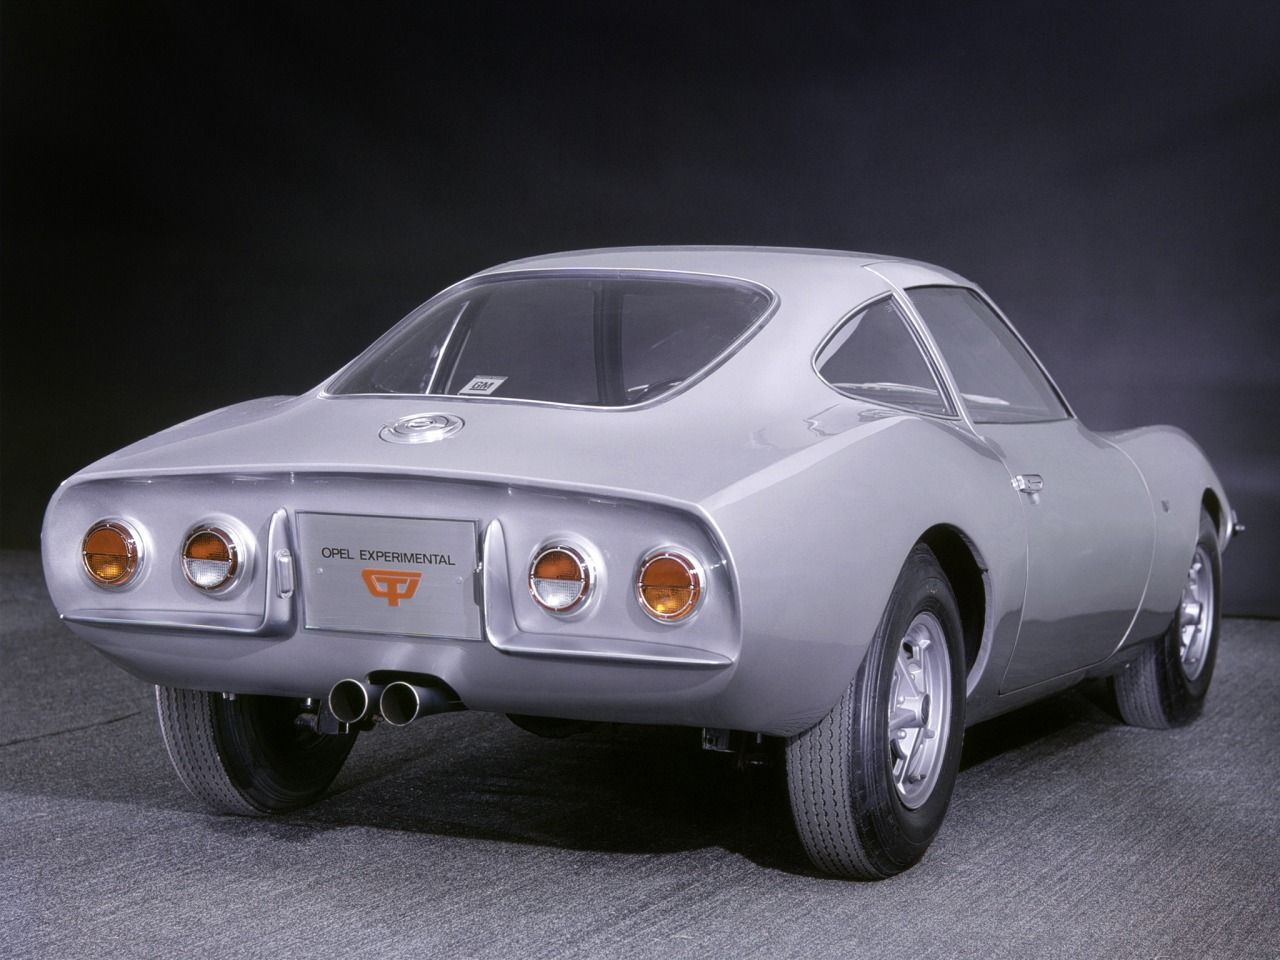 Opel Experimental GT (1965) | 1960s Prototypes, Concepts, and Dream ...